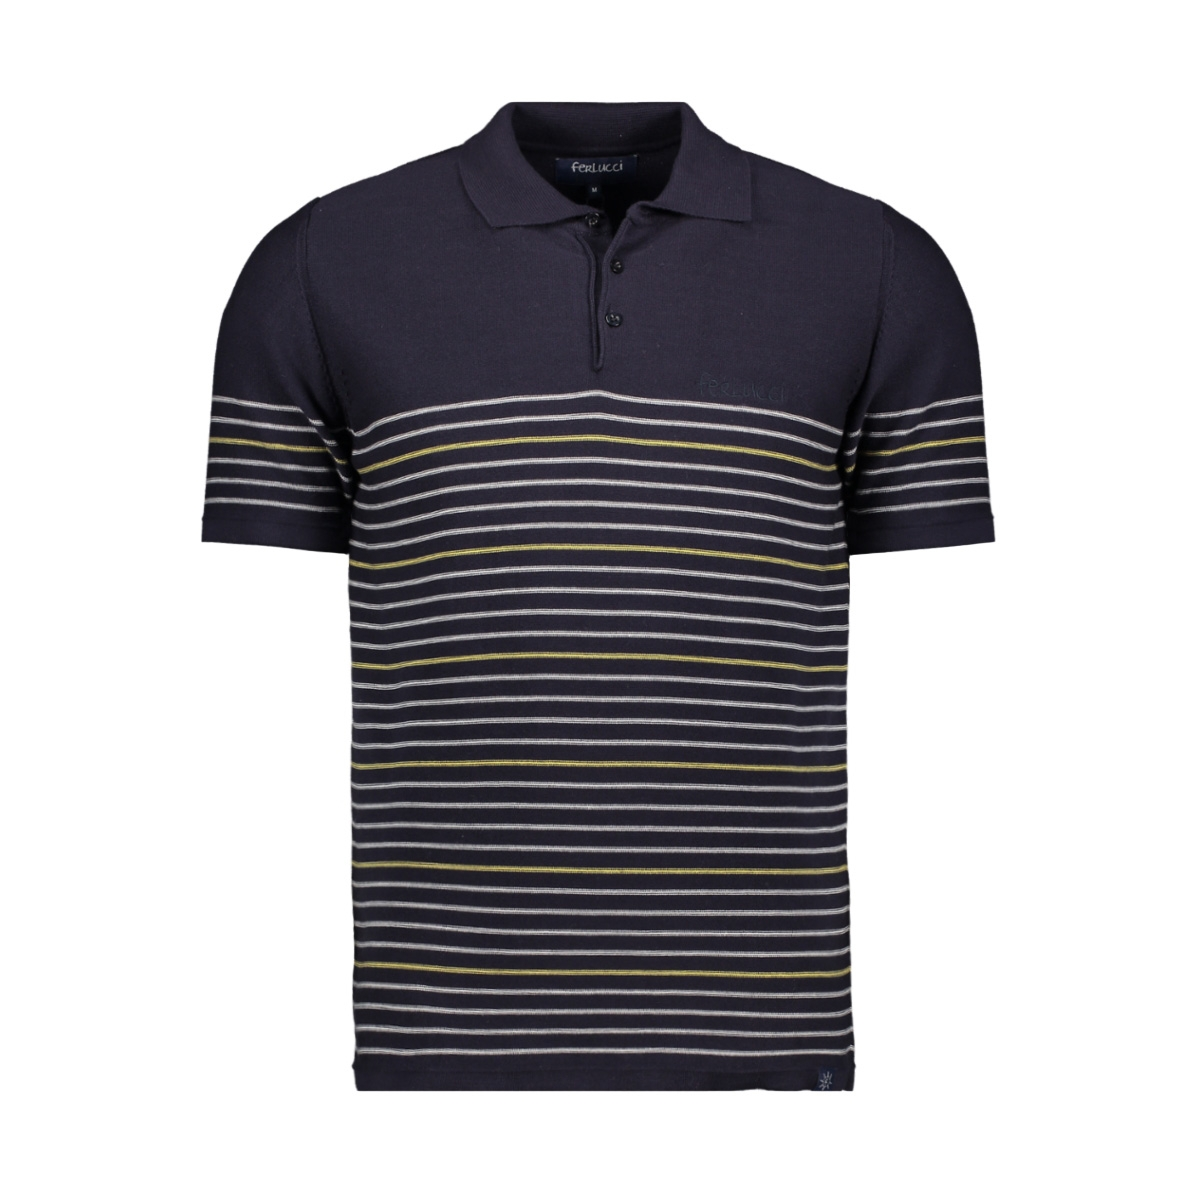 gianni ferlucci polo navy